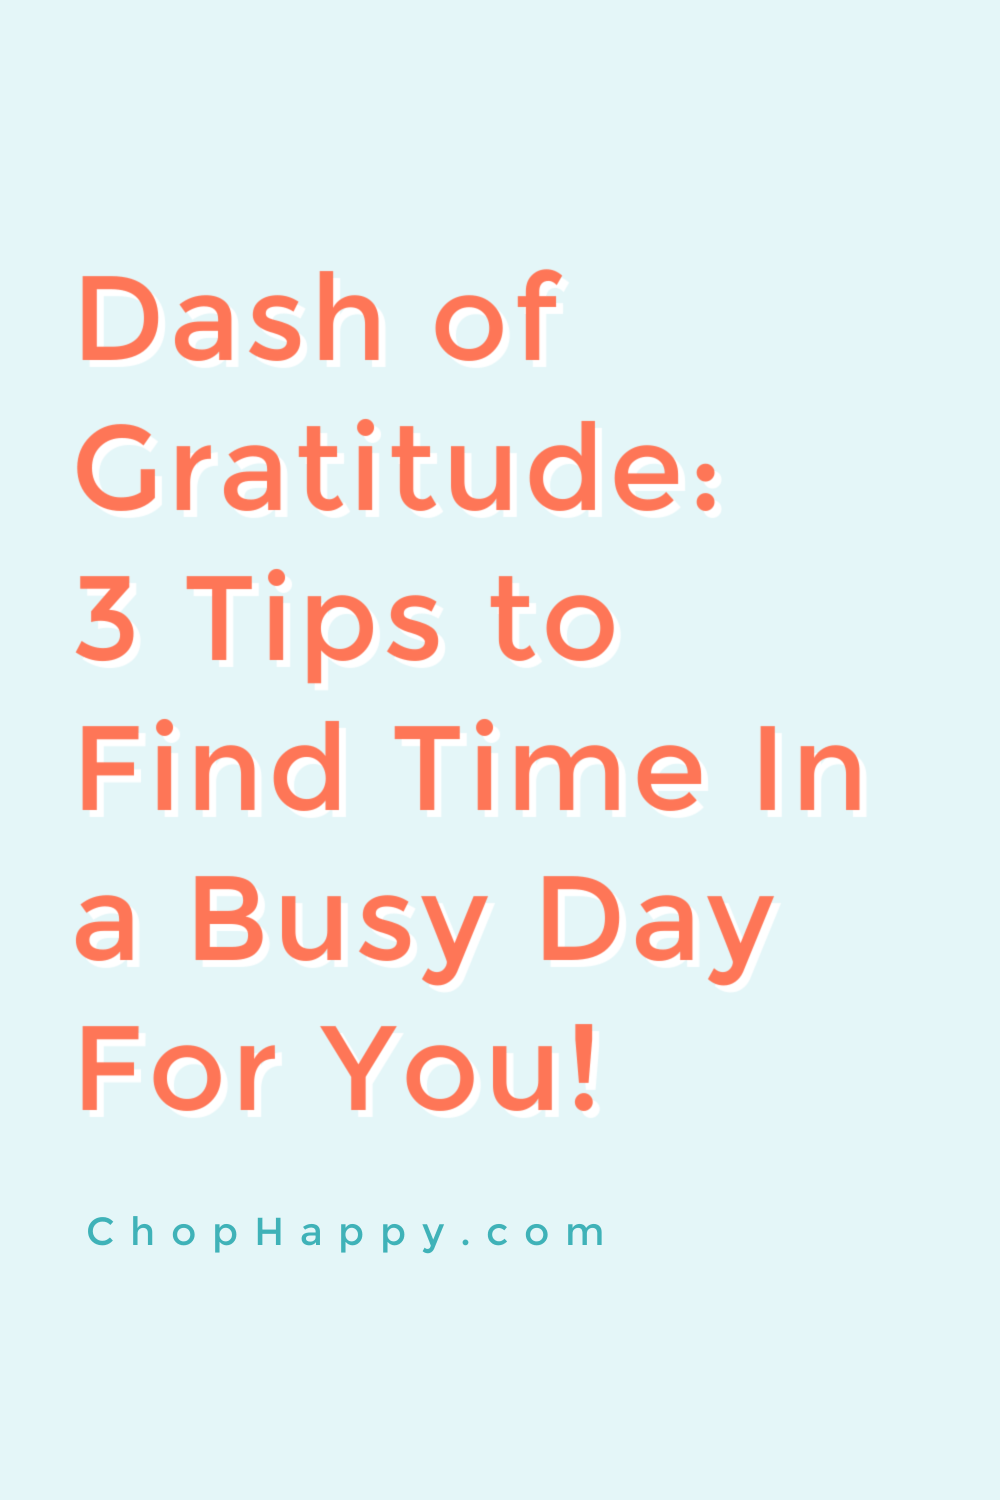 Dash of Gratitude: 3 Tips to Find Time In a Busy Day For You! www.ChopHappy.com #lawofattraction #attitudeofgratitude